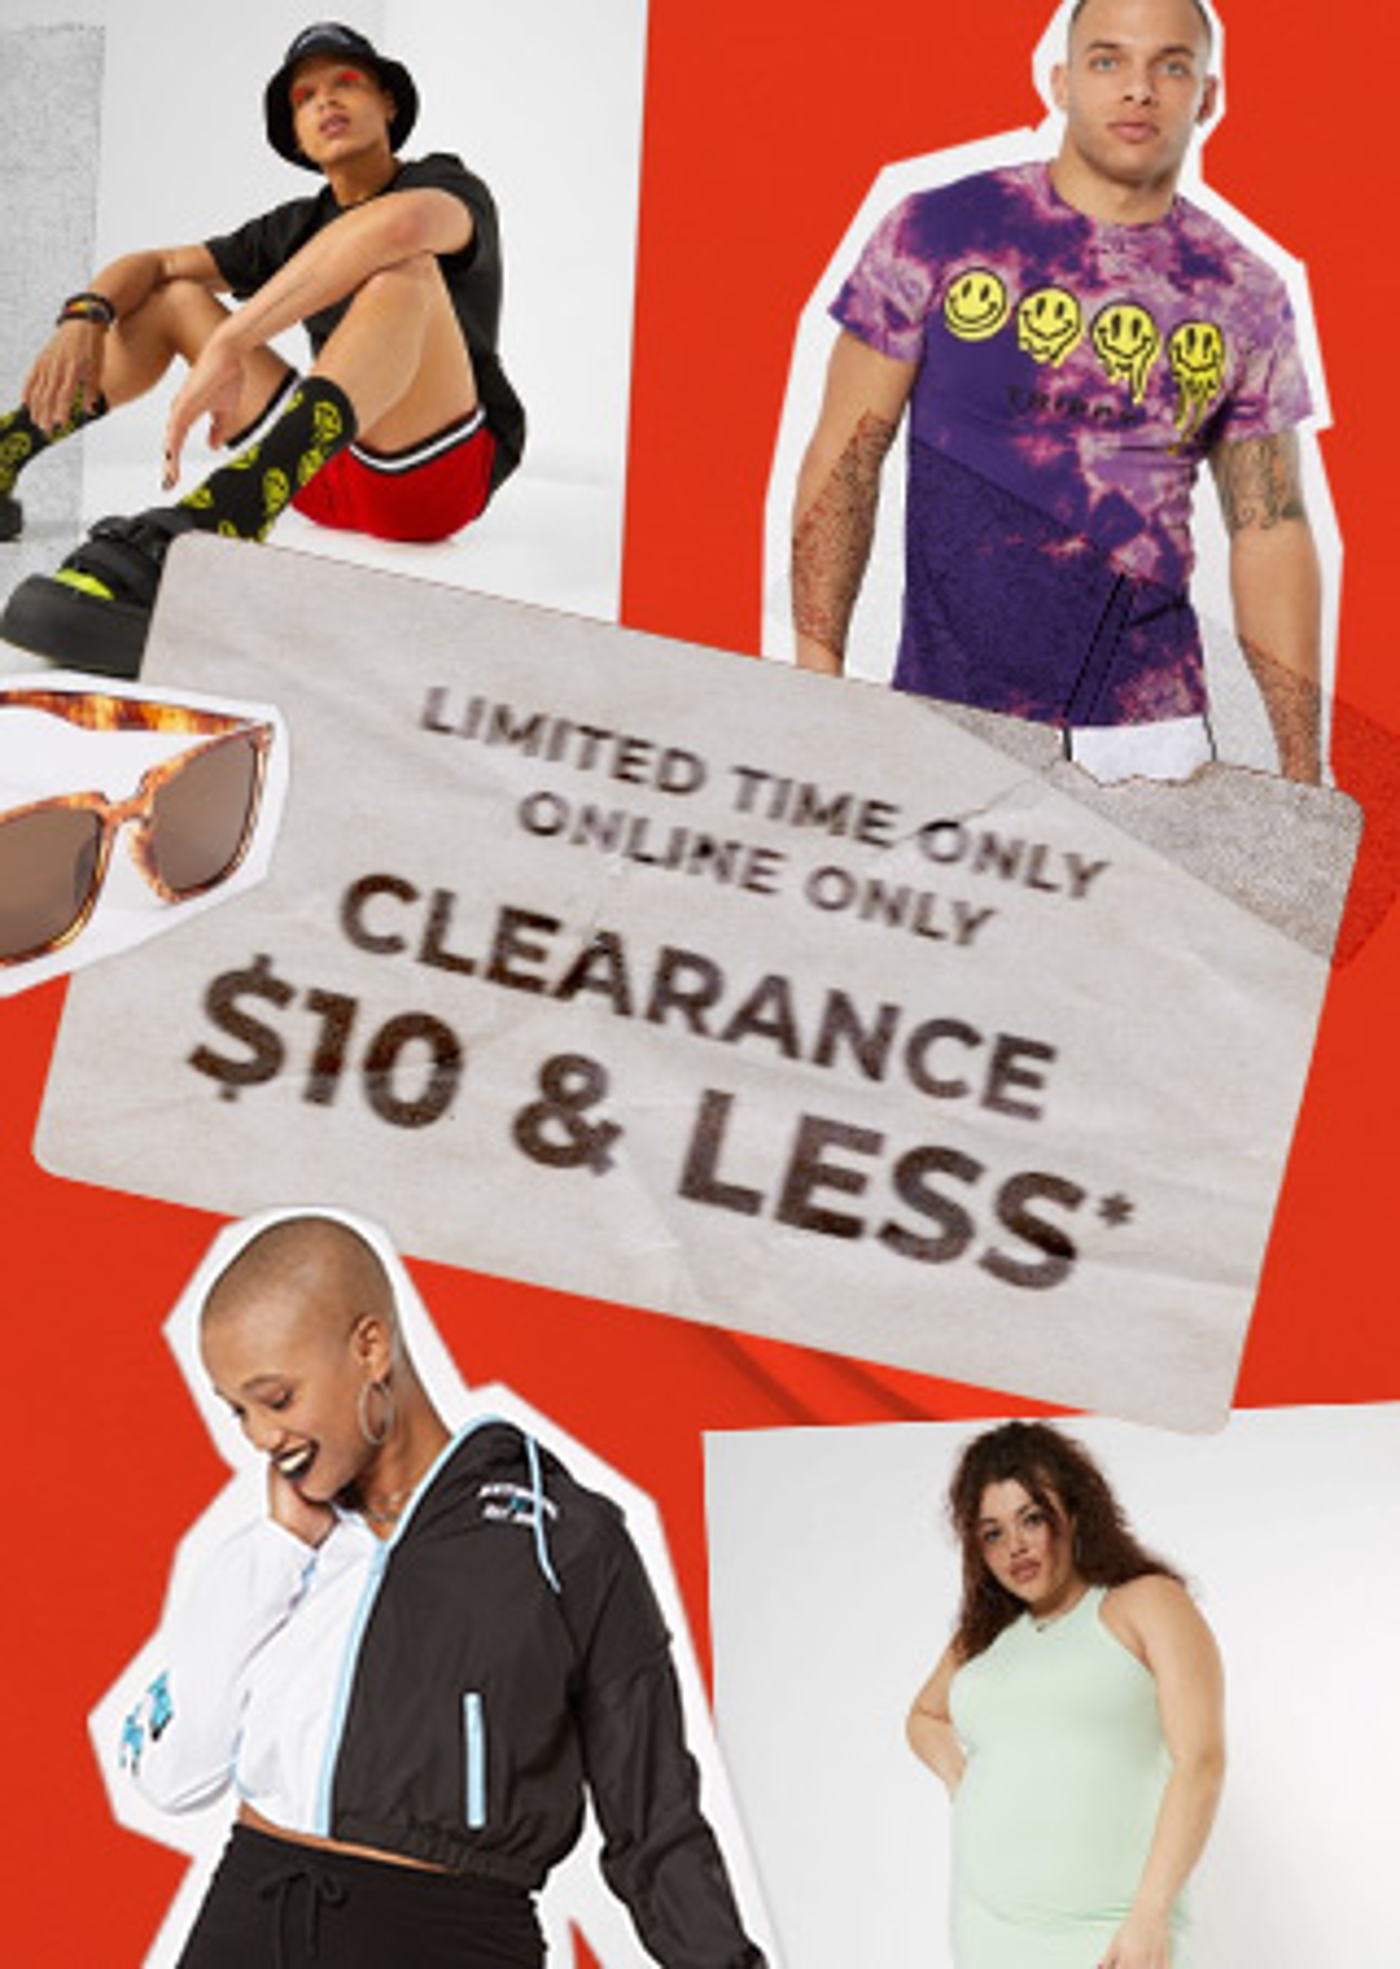 Clearance $10 & Less